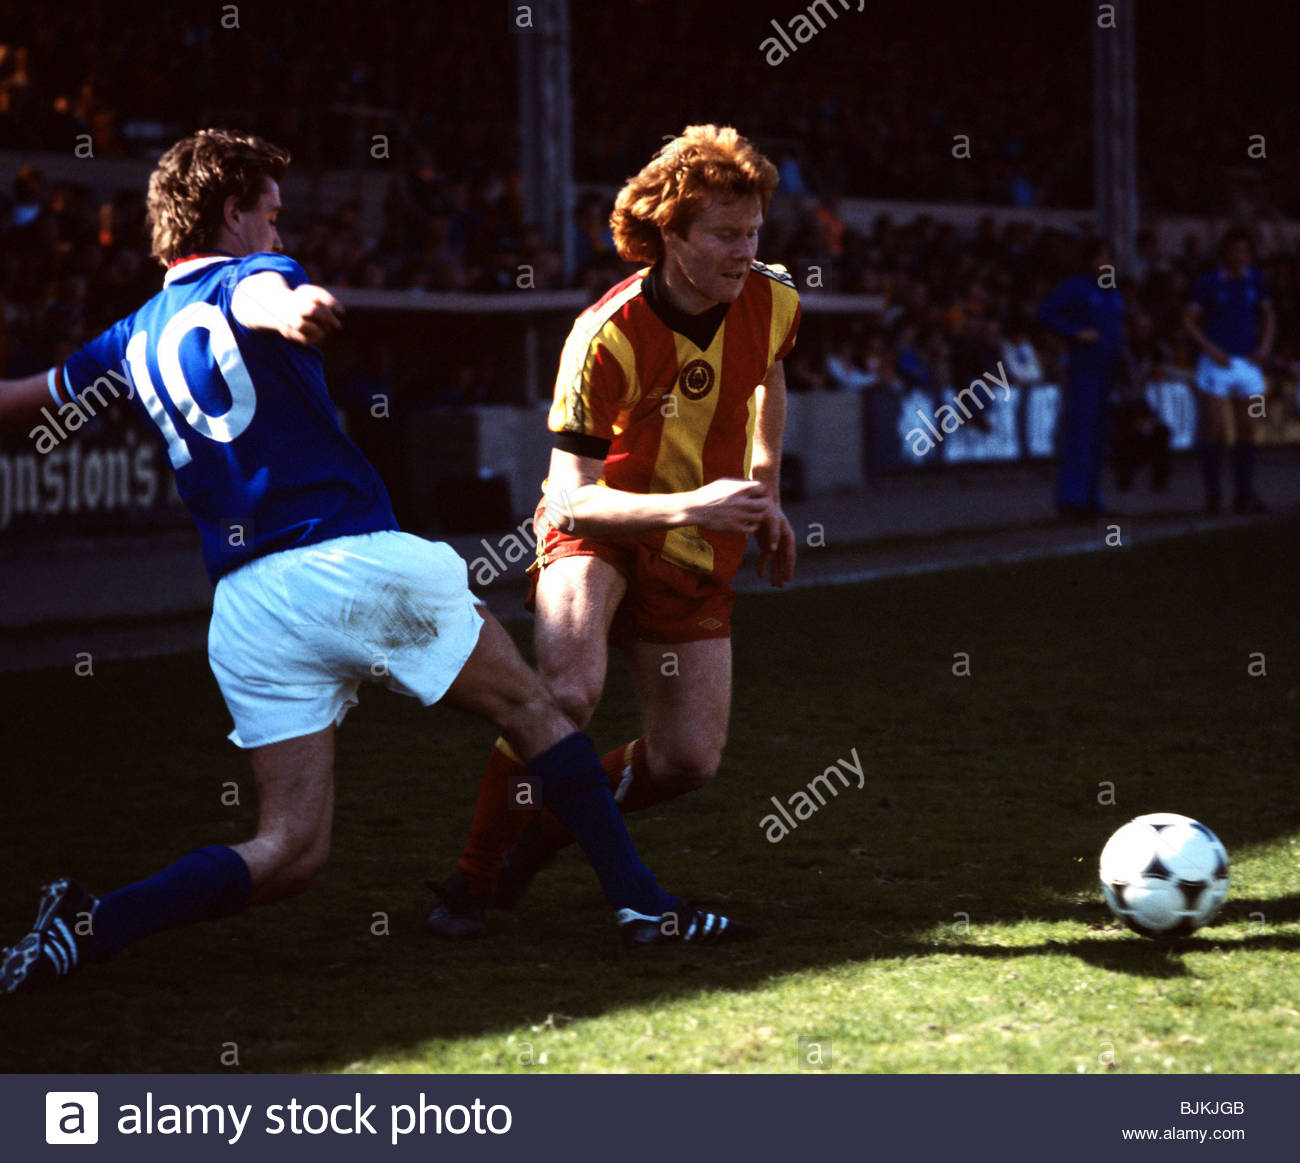 SEASON 1980/1981 PARTICK THISTLE v RANGERS FIRHILL - GLASGOW Partick's Dave MacKinnon (right) is challenged - Stock Image